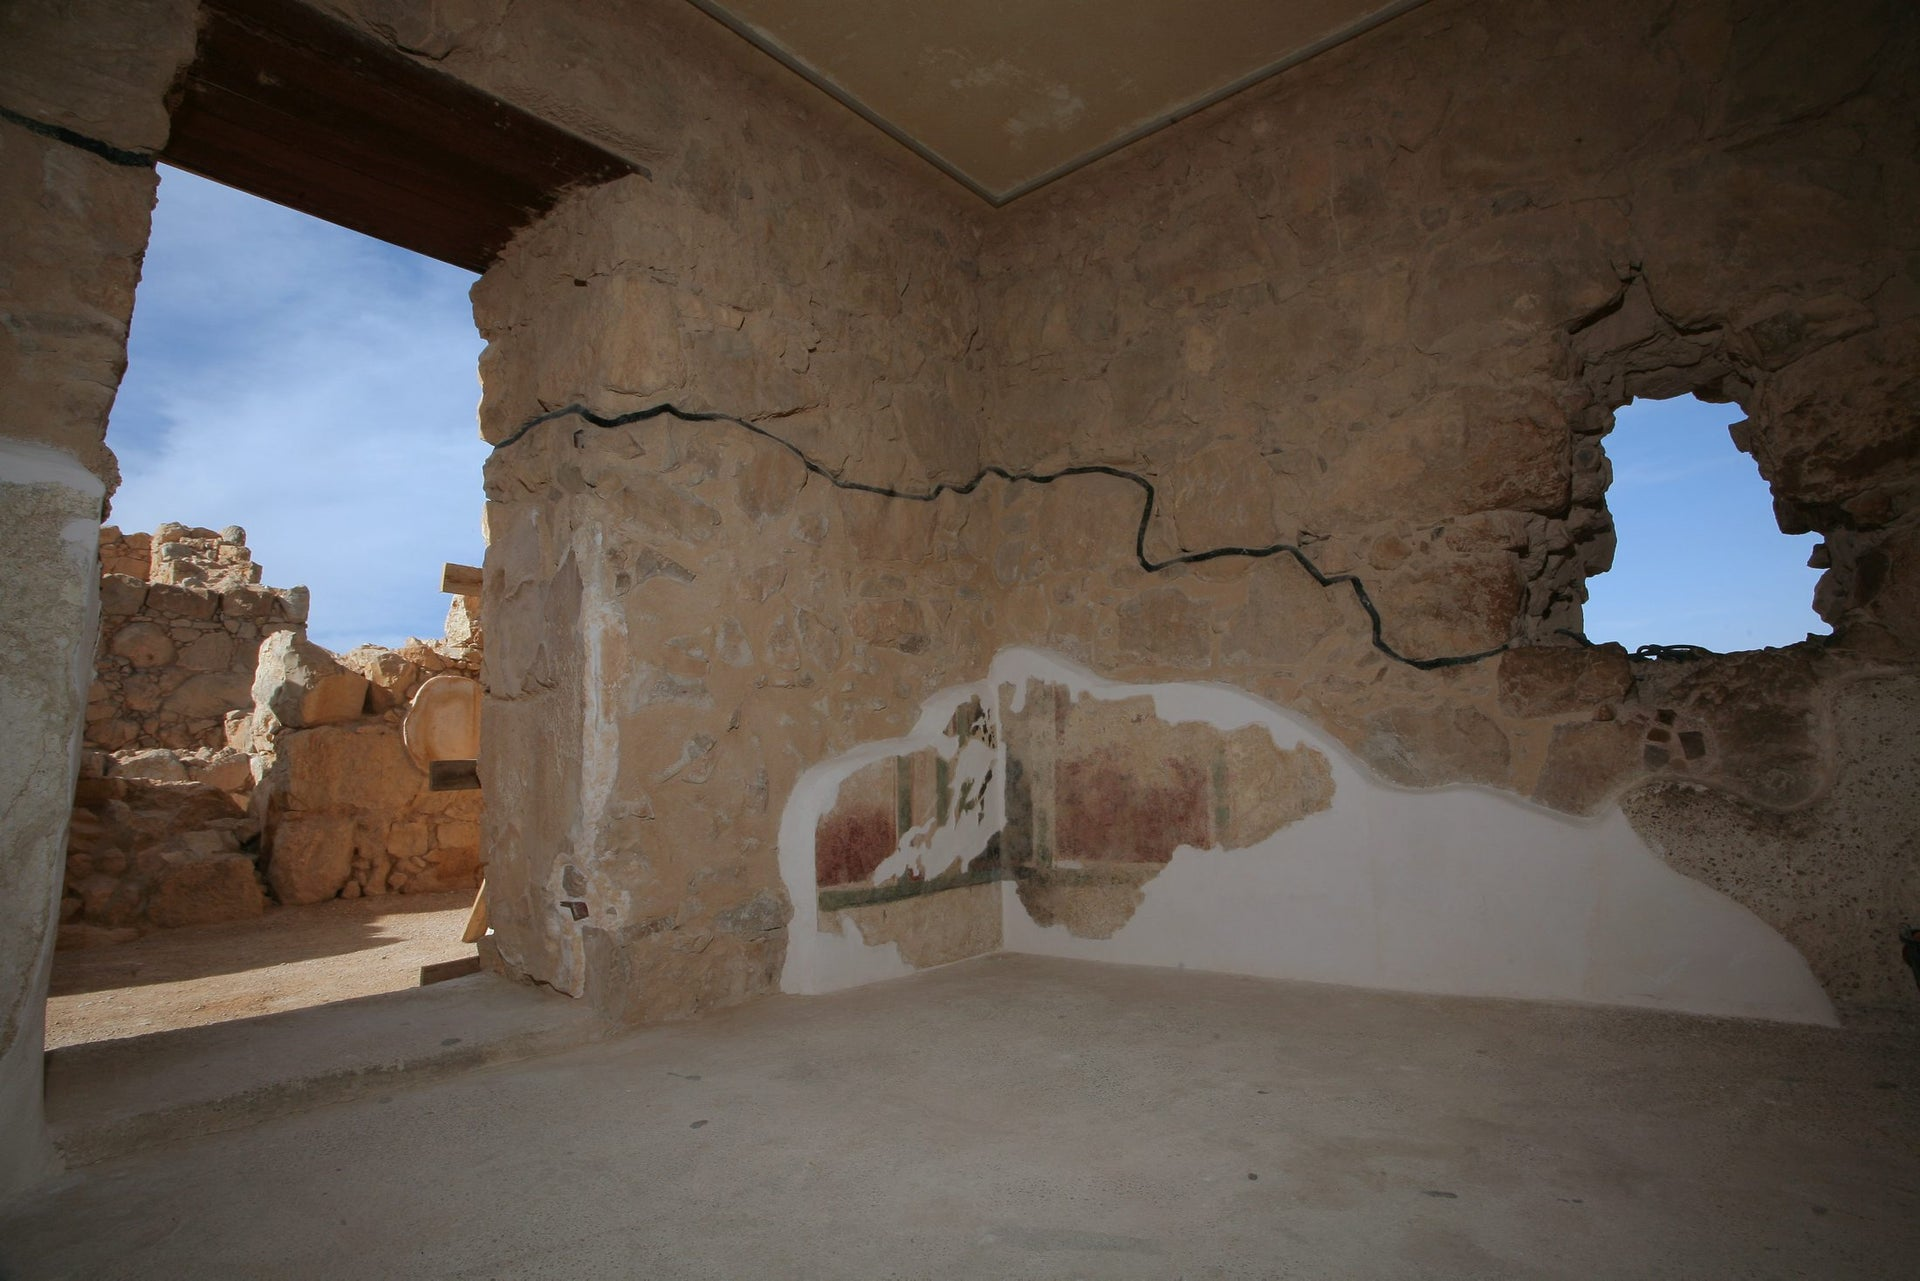 The walls of the Masada fortress once bore frescoes.